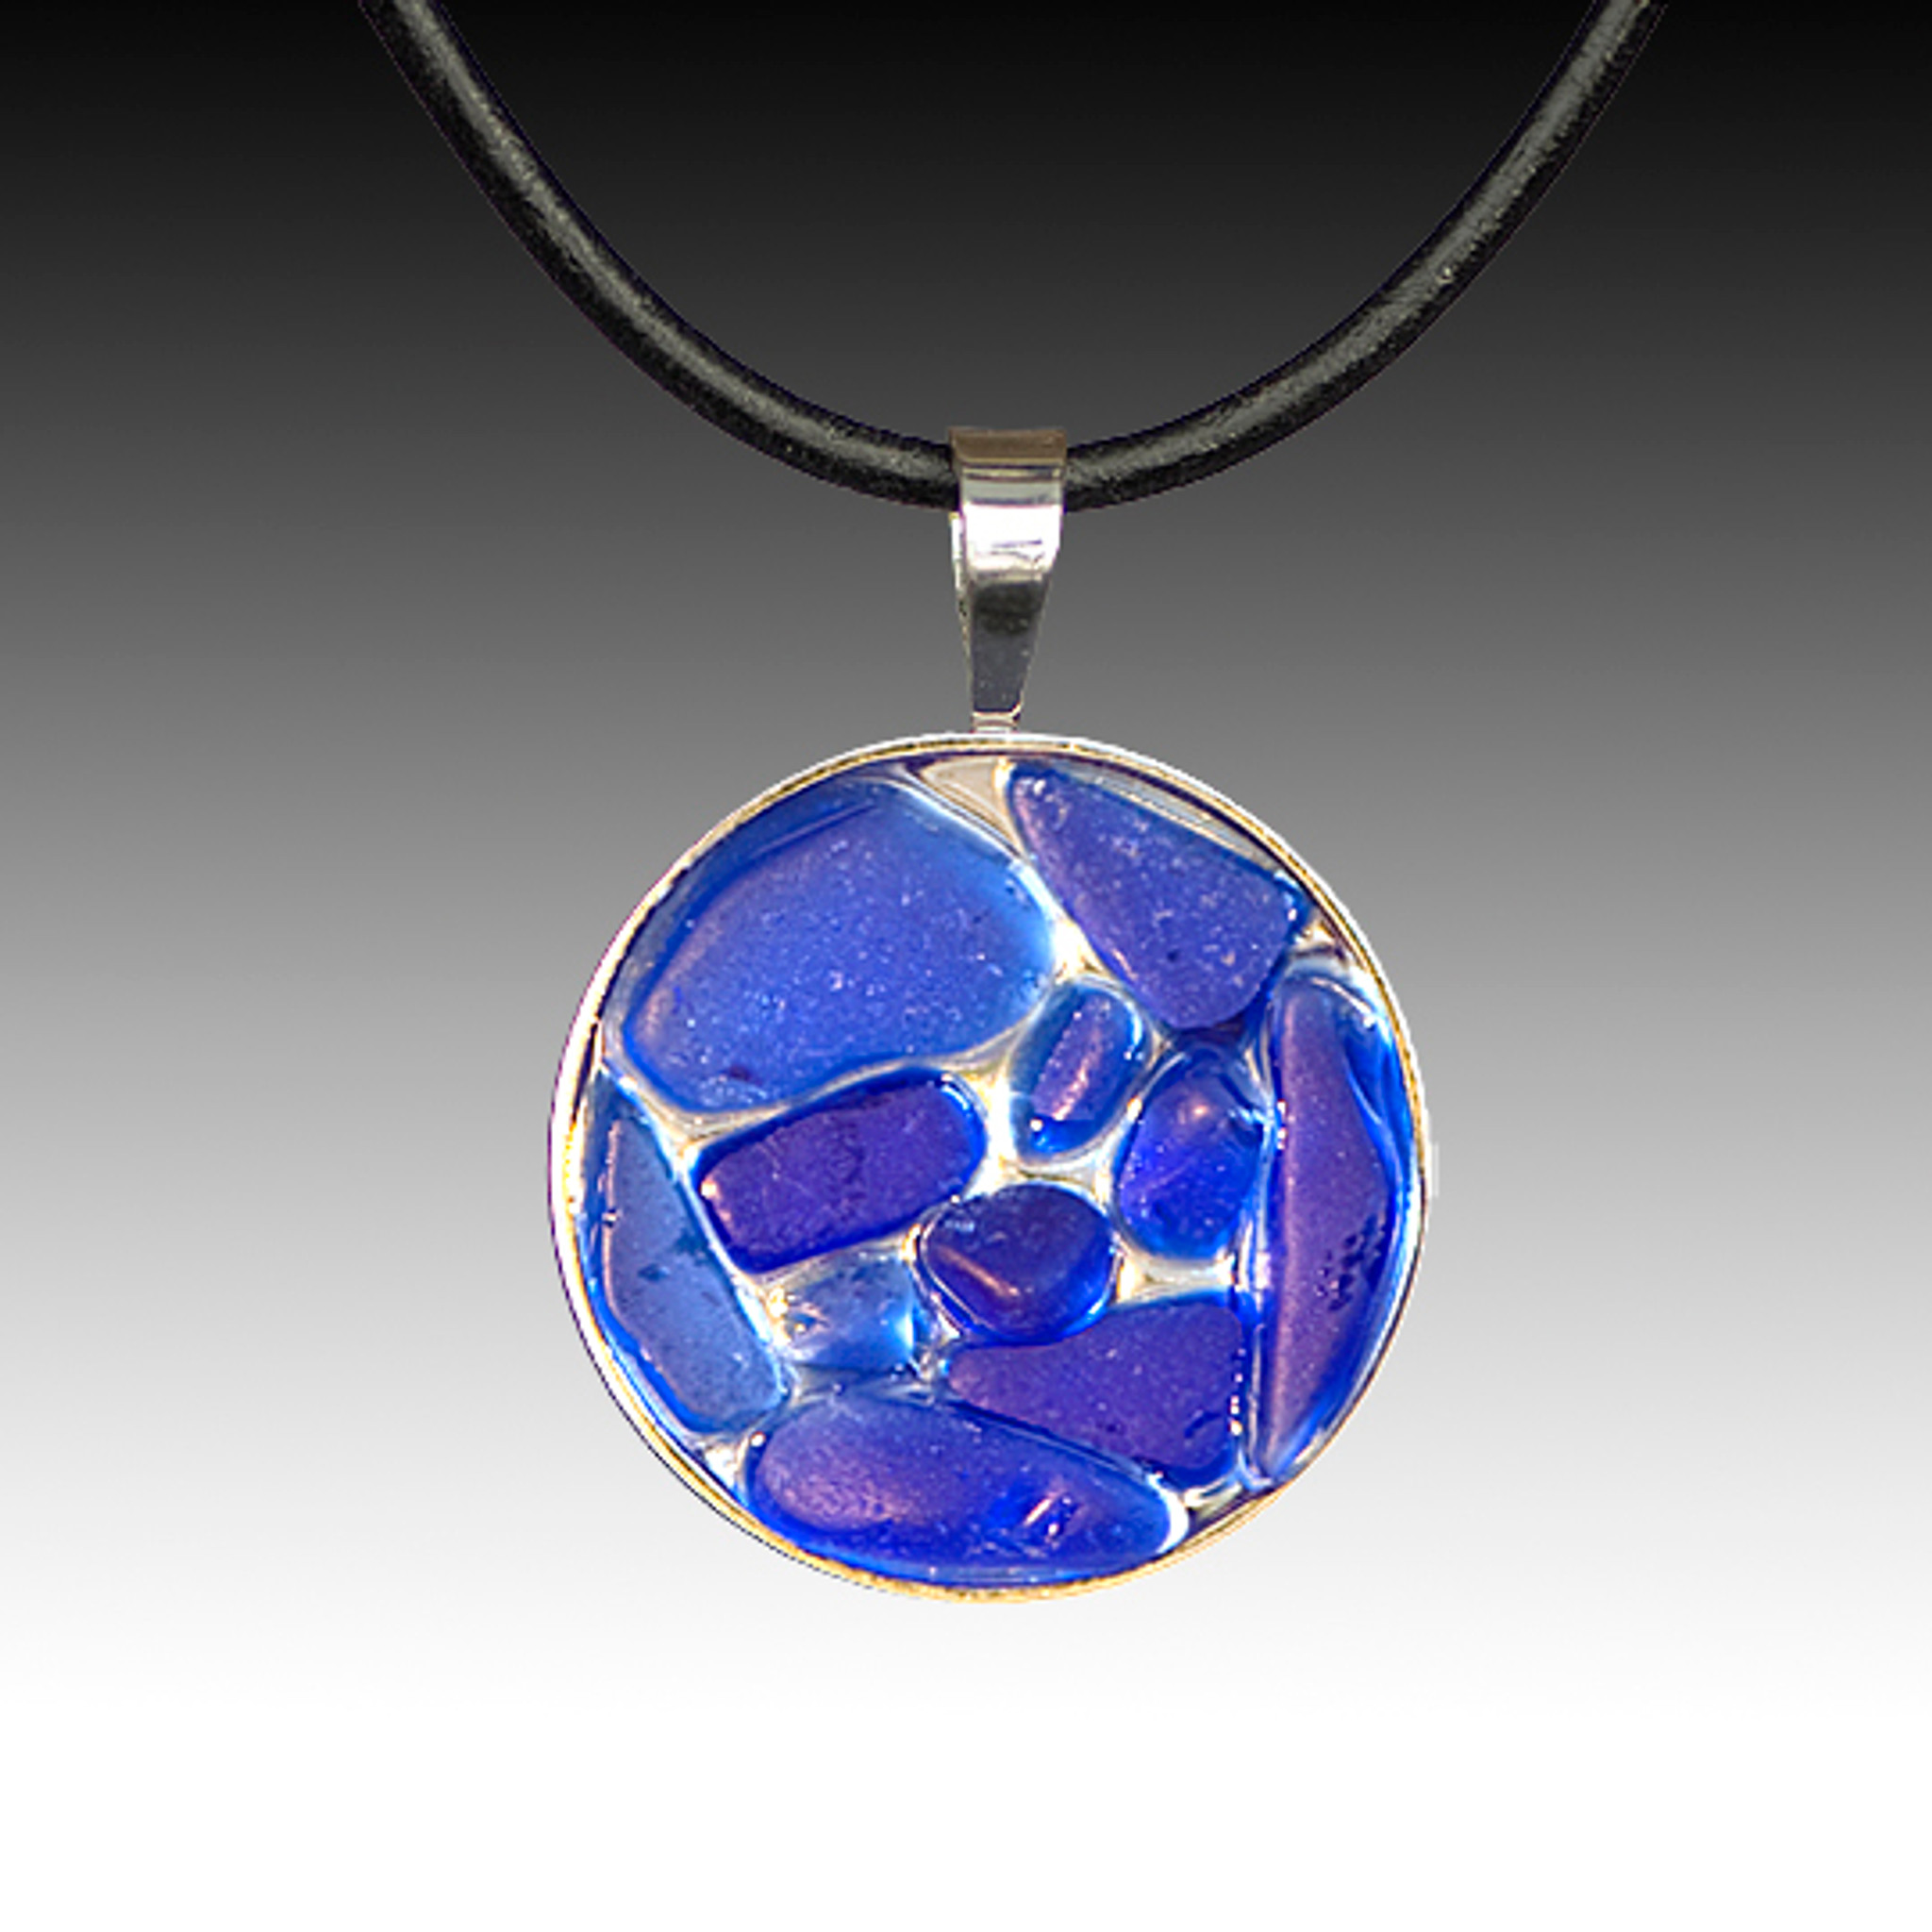 Cobalt beach glass pendant with leather necklace relish inc store cobalt beach glass pendant with leather necklace aloadofball Image collections